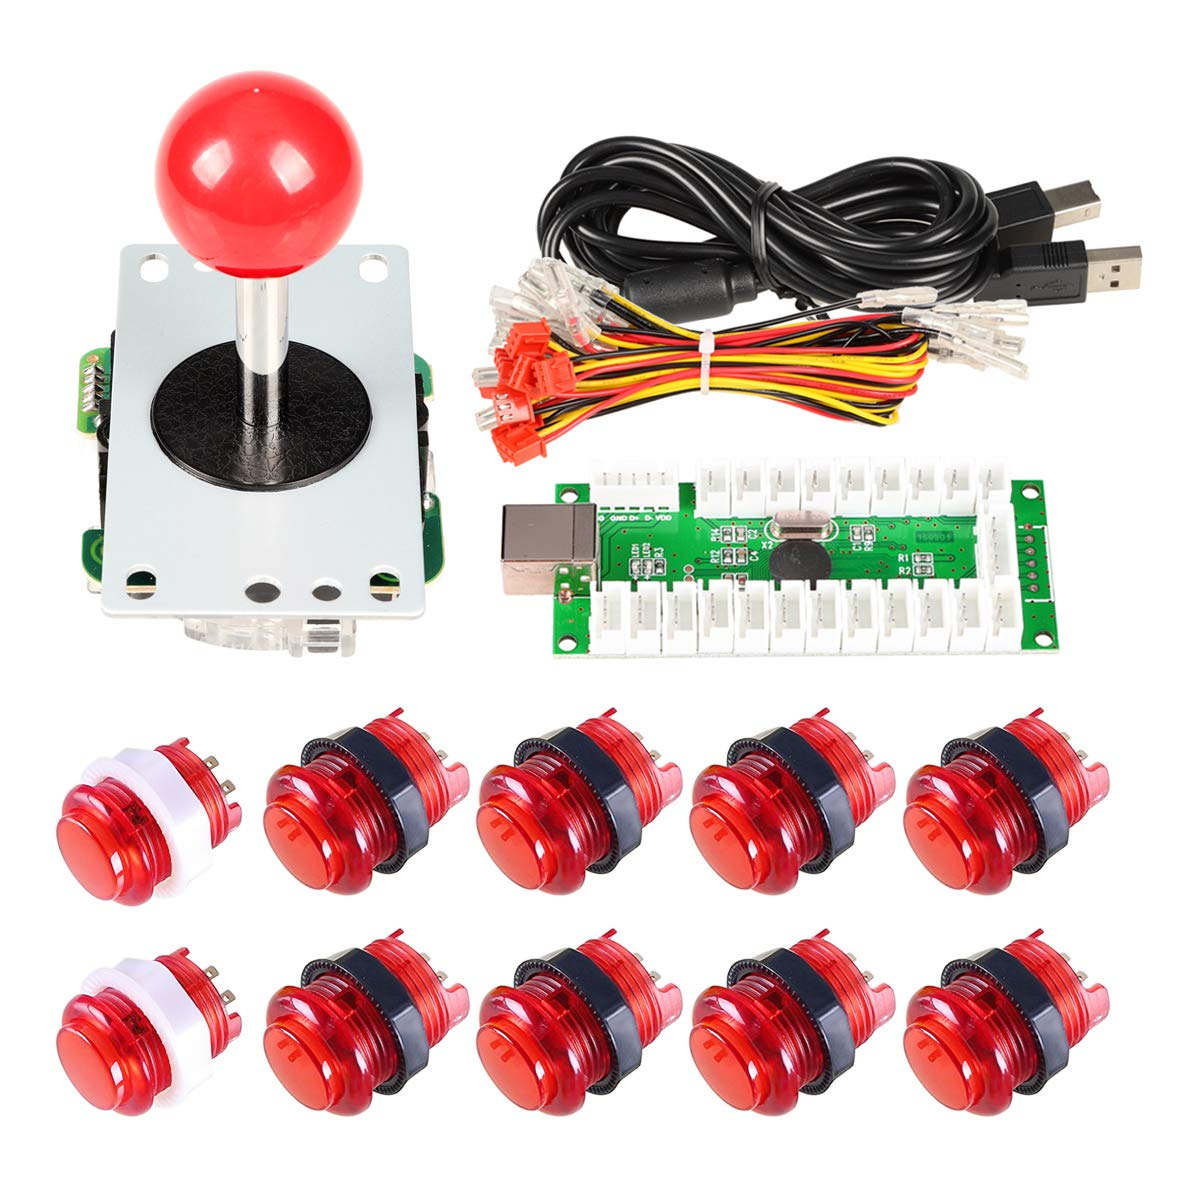 EG Starts Zero Delay USB Encoder To PC Games 5 Pin 8 Ways Sticker + 2x 24mm 5V Buttons + 8x 30mm LED Illuminated Push Button For Classic Arcade Joystick DIY Kits Part KOF Mame Raspberry Pi 2 3 Red Colors